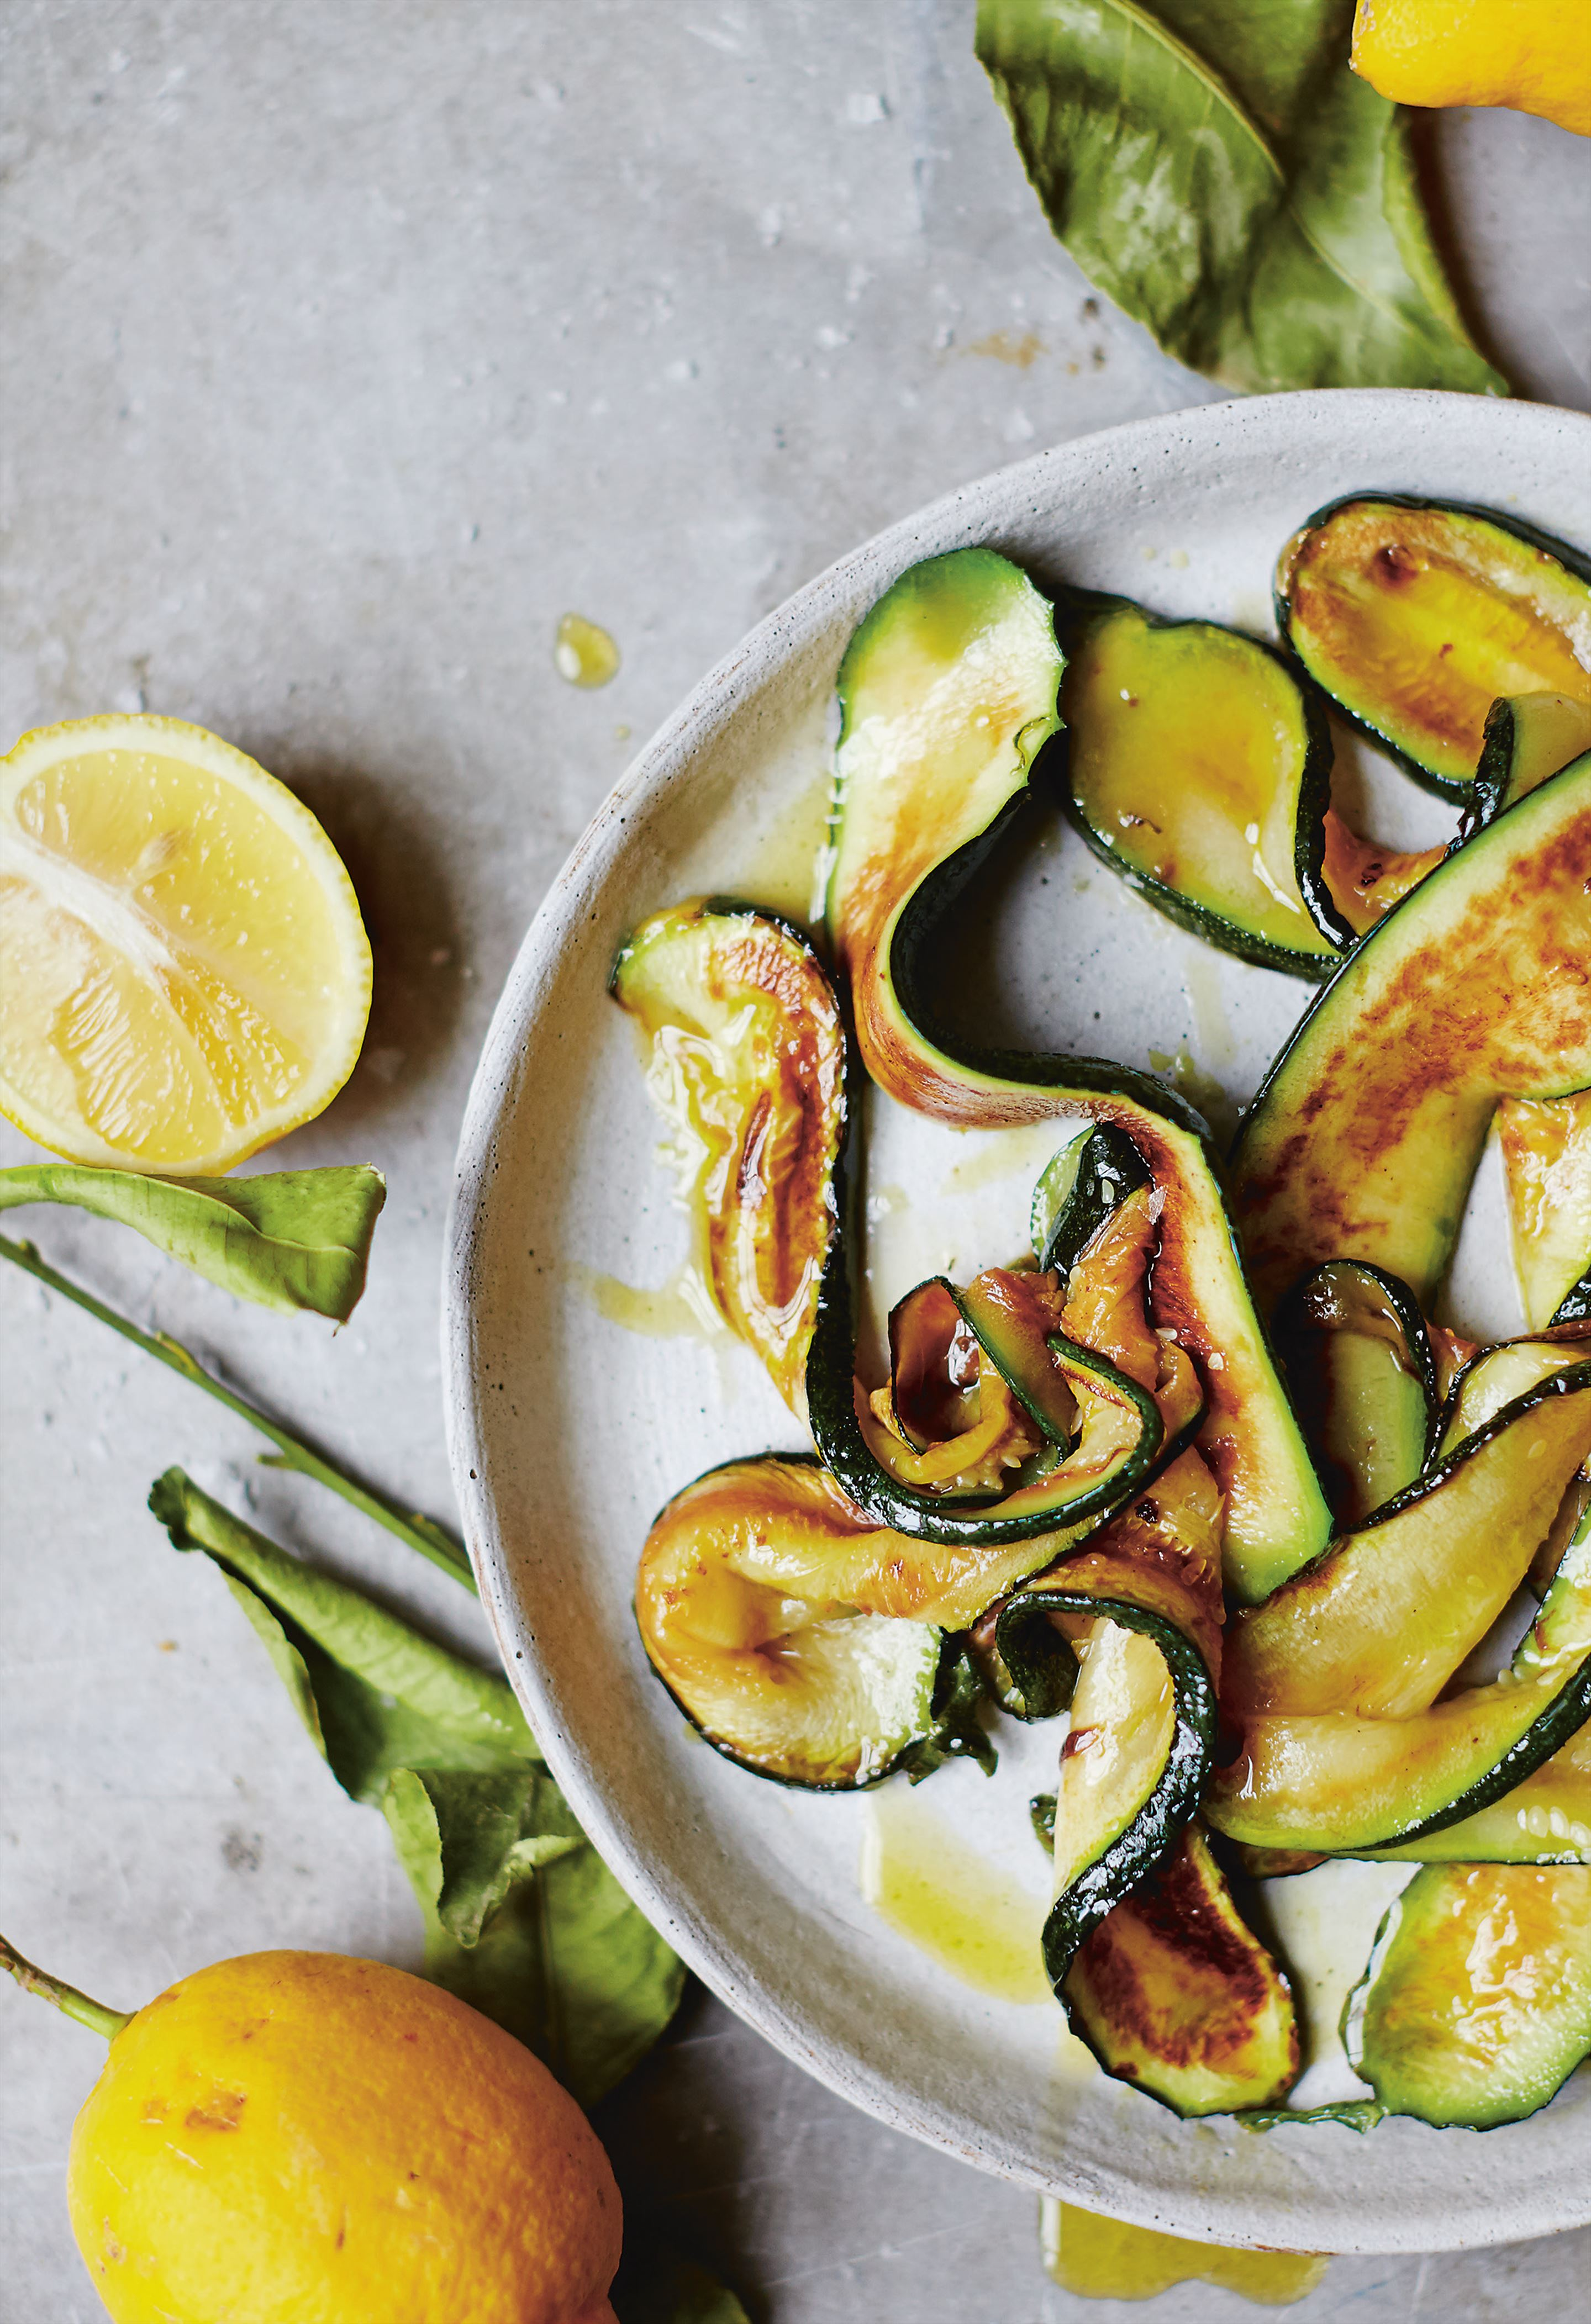 Courgettes with lemon and sea salt